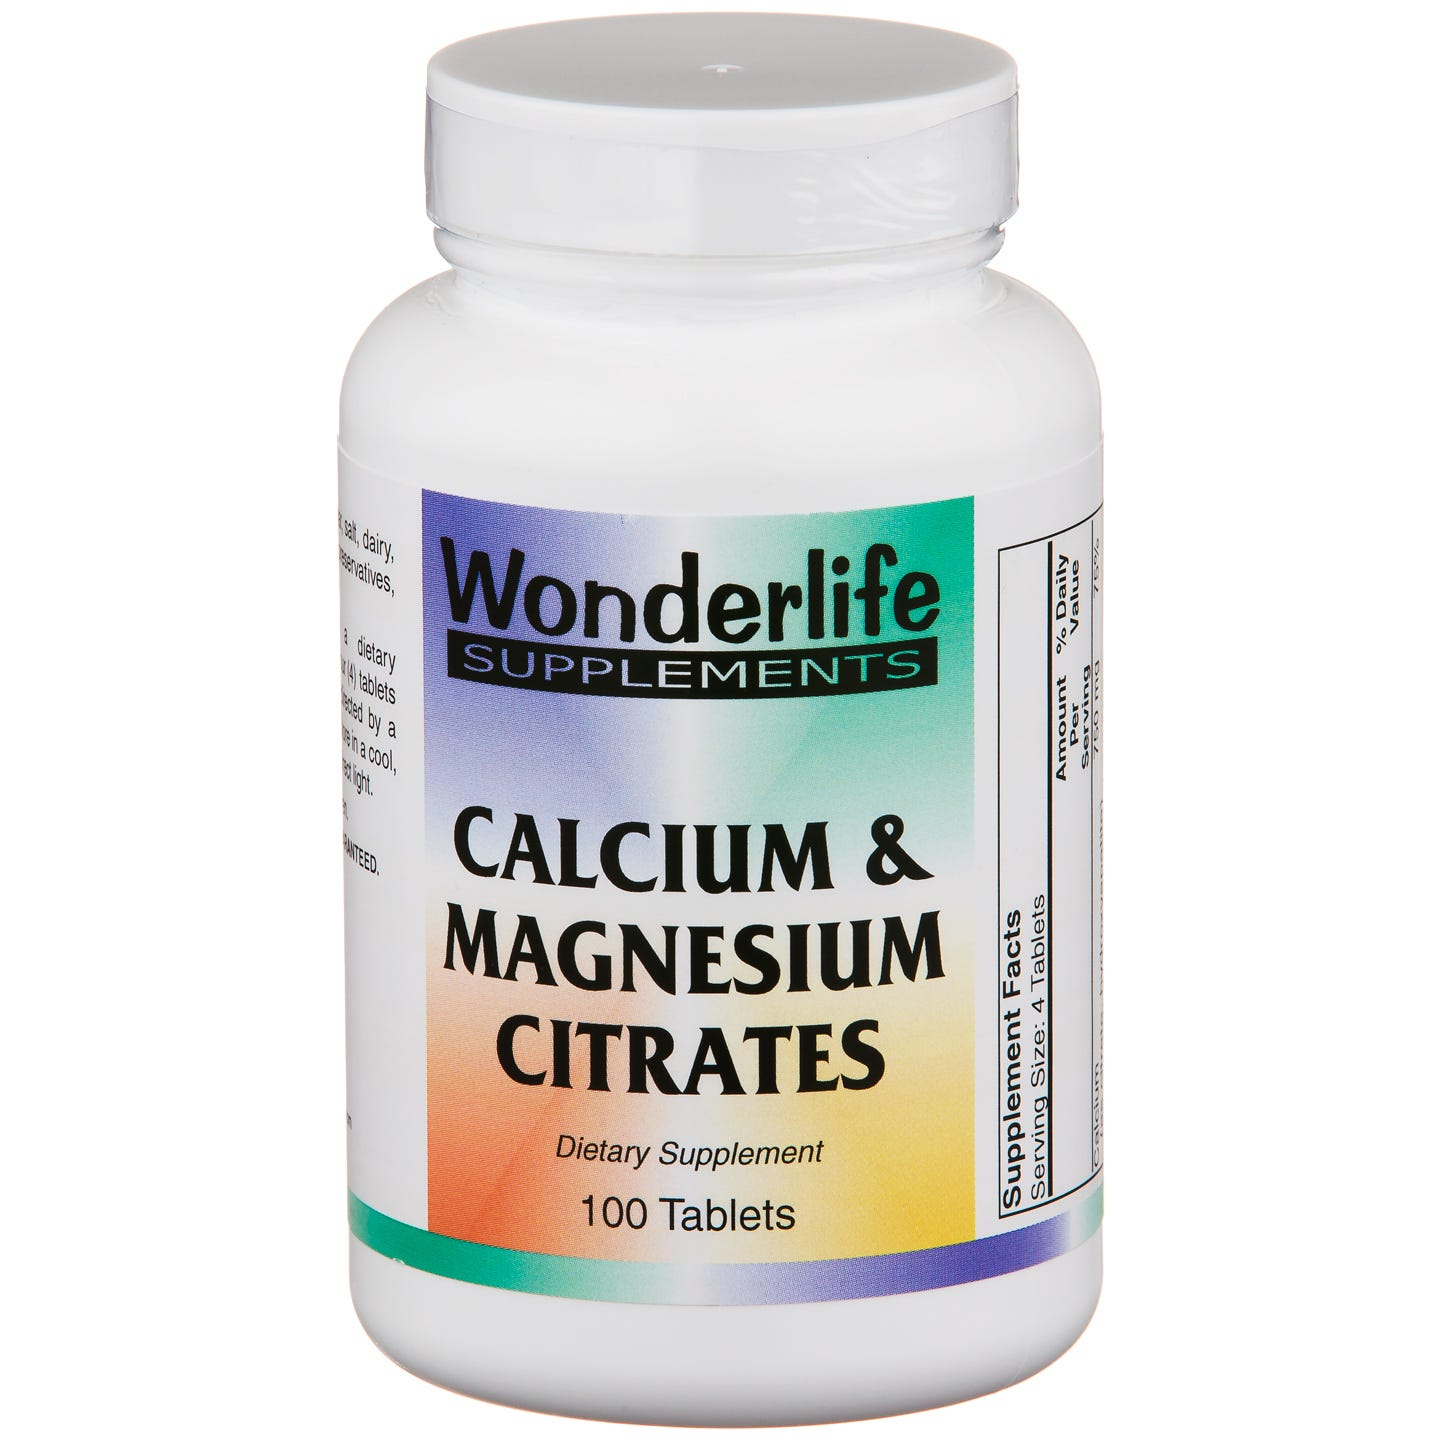 Calcium & Magnesium Citrates (100 ct) - Wonderlife - Rapid Diet Weight Loss Products Shop